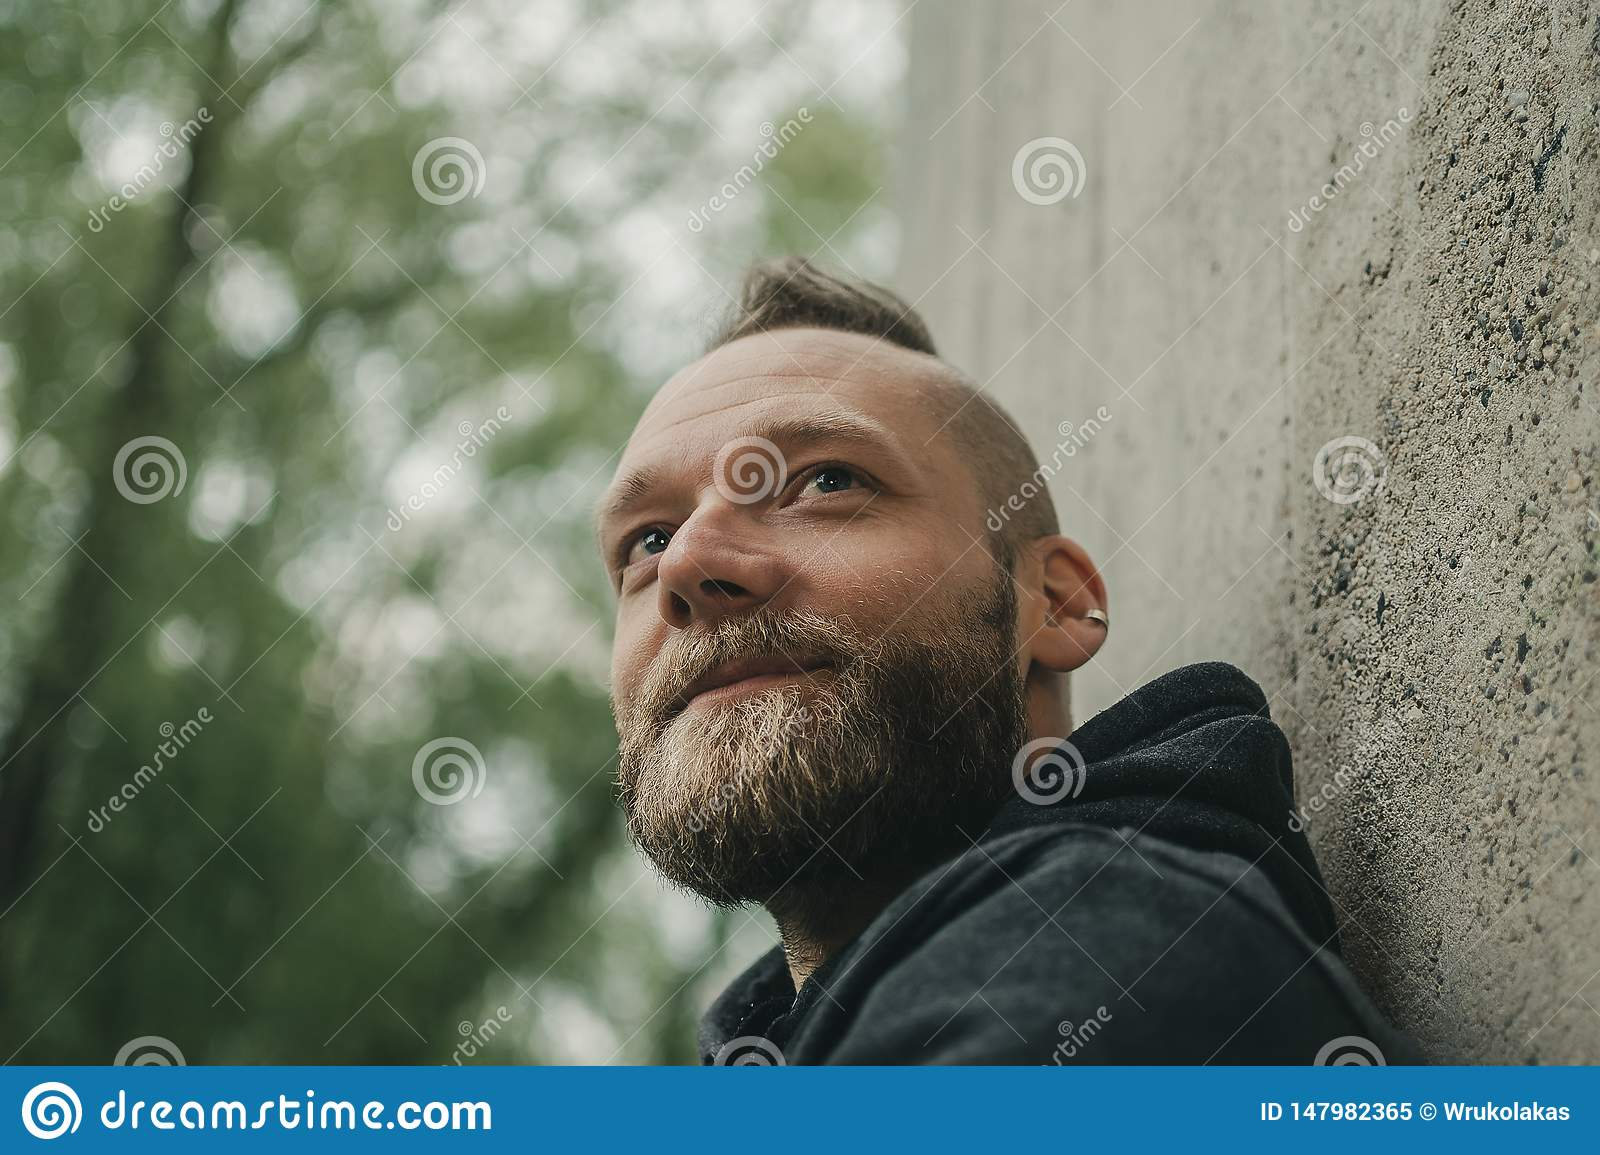 Man looks into distance and smiles